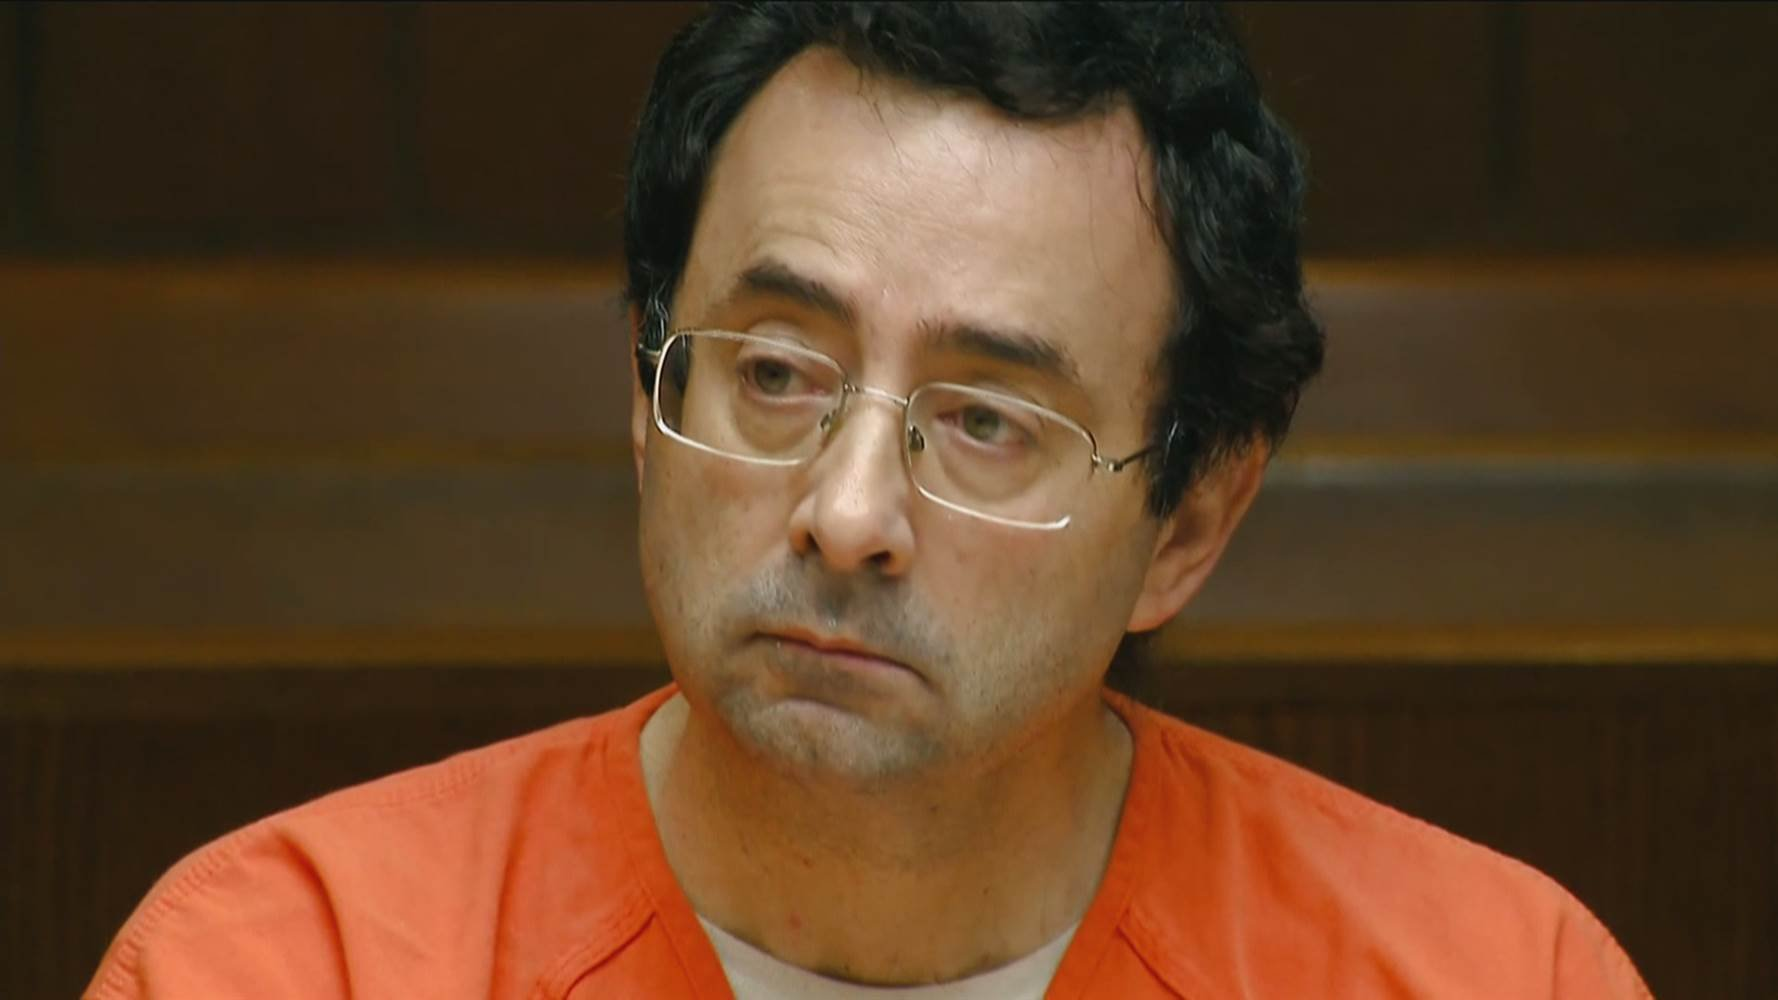 Disgraced former US Gymnastics doctor sent to Arizona federal prison